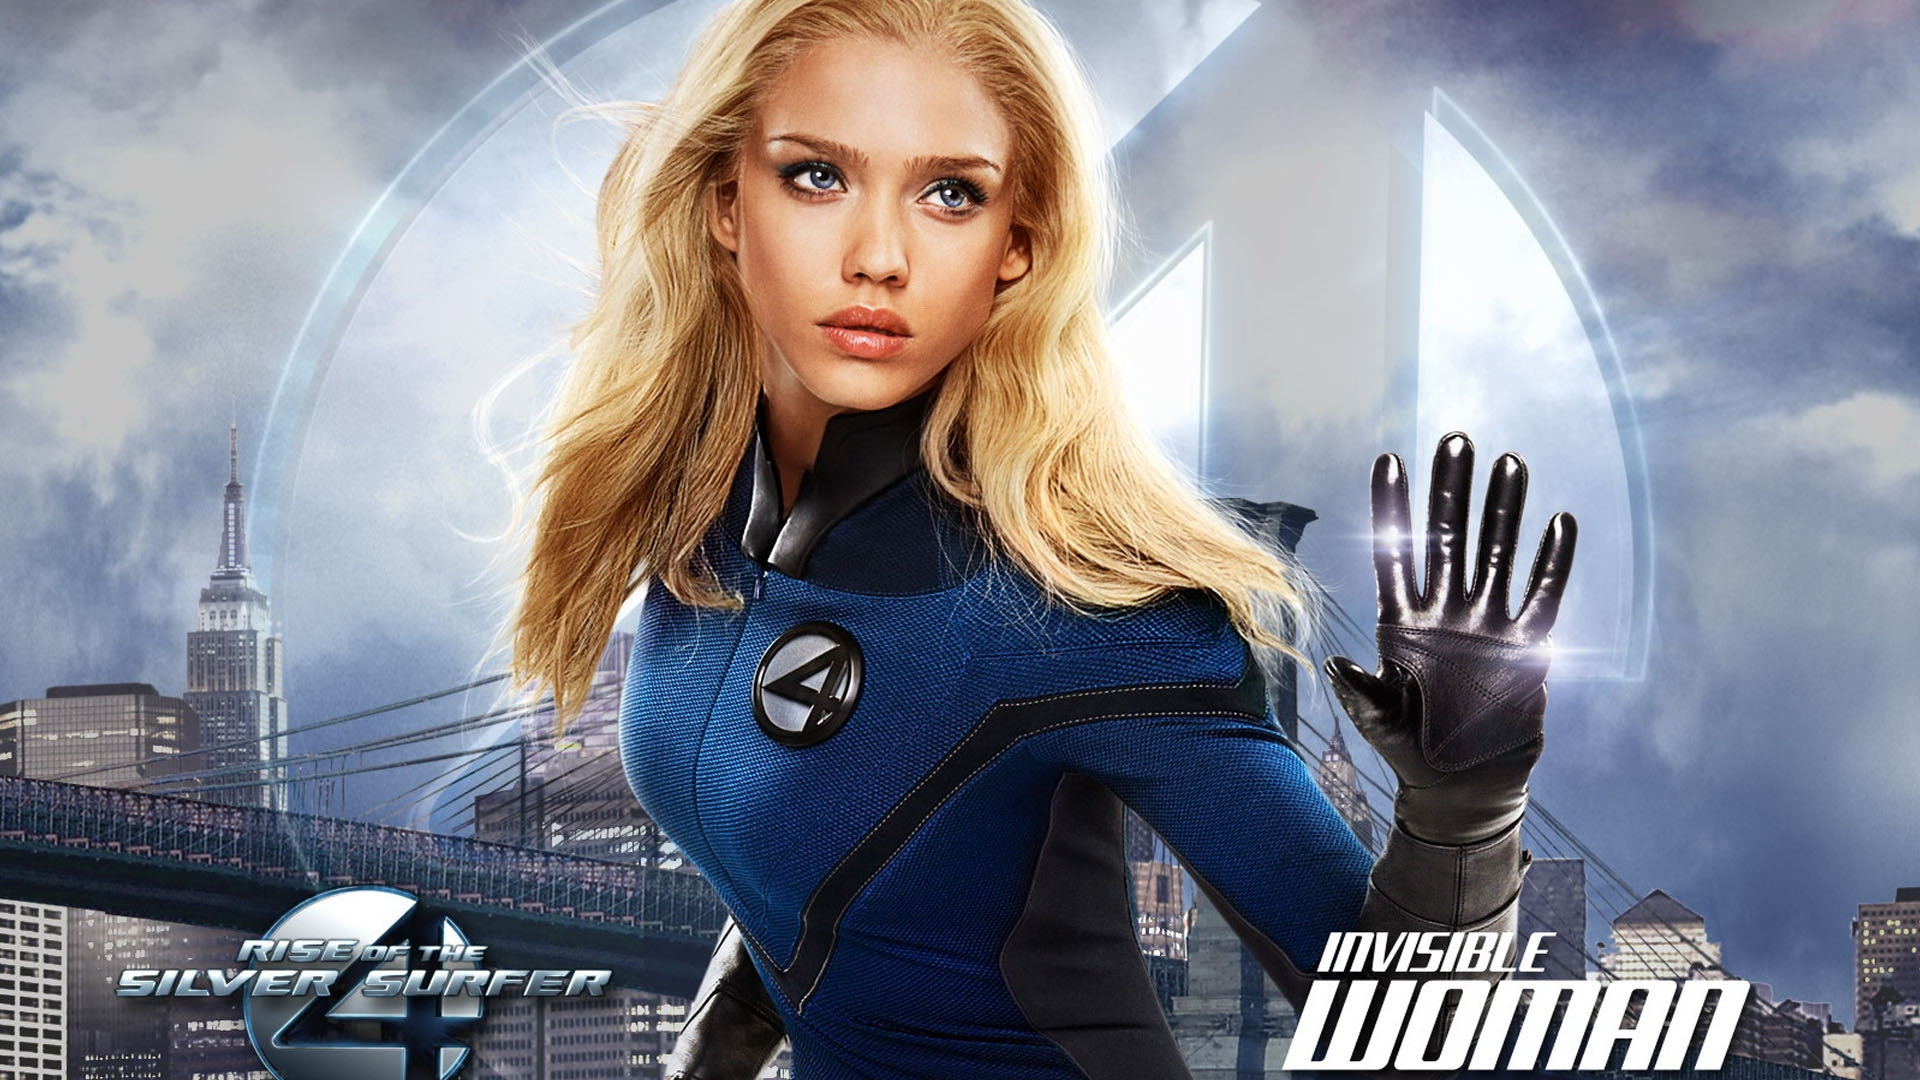 Download Wallpaper 1920x1080 Fantastic 4 Rise Of The Silver